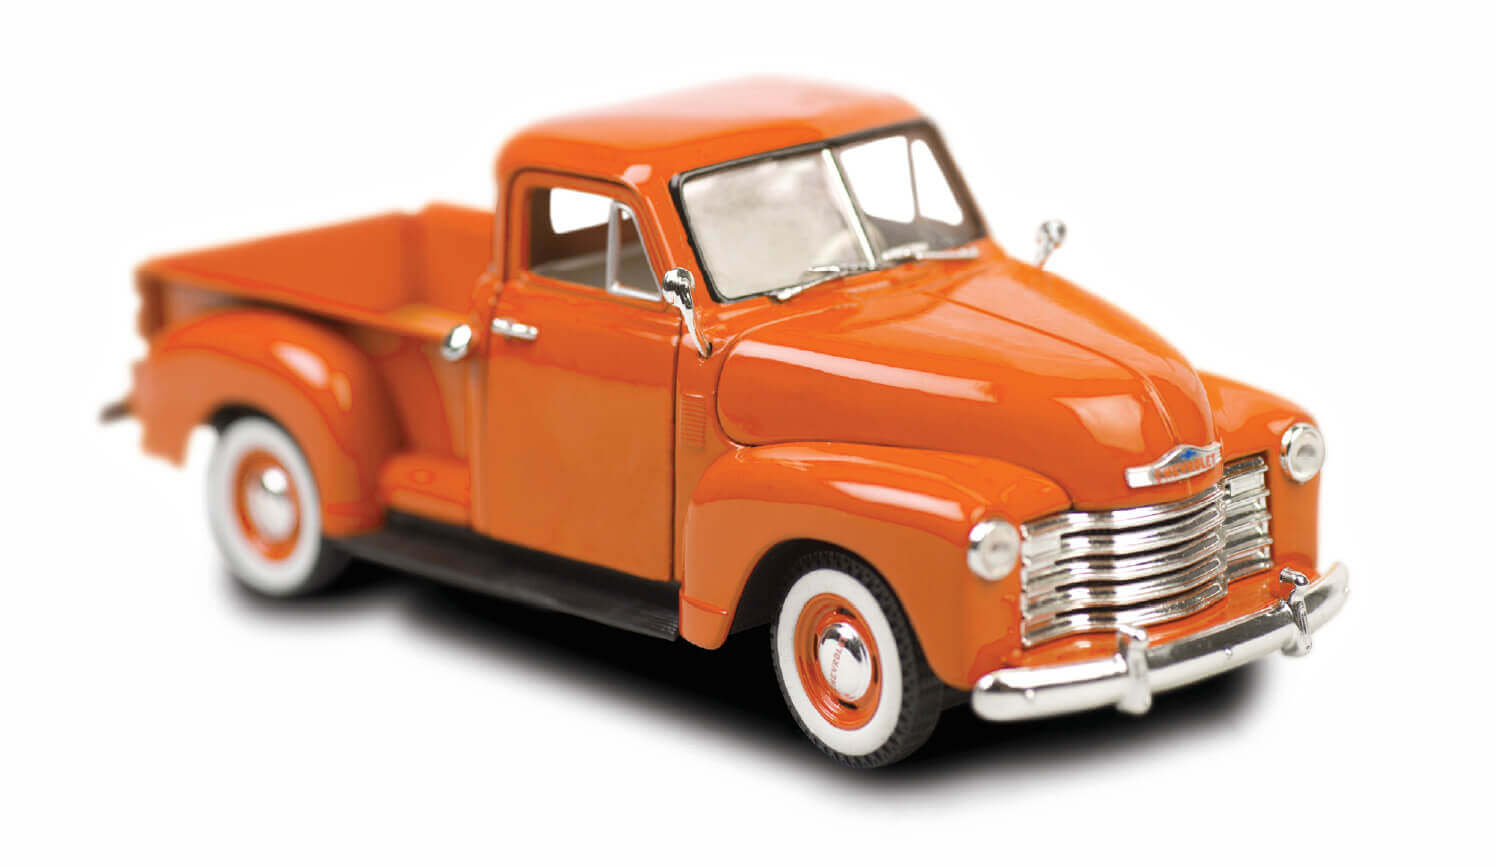 52 Pick-up Inc. Toy Truck